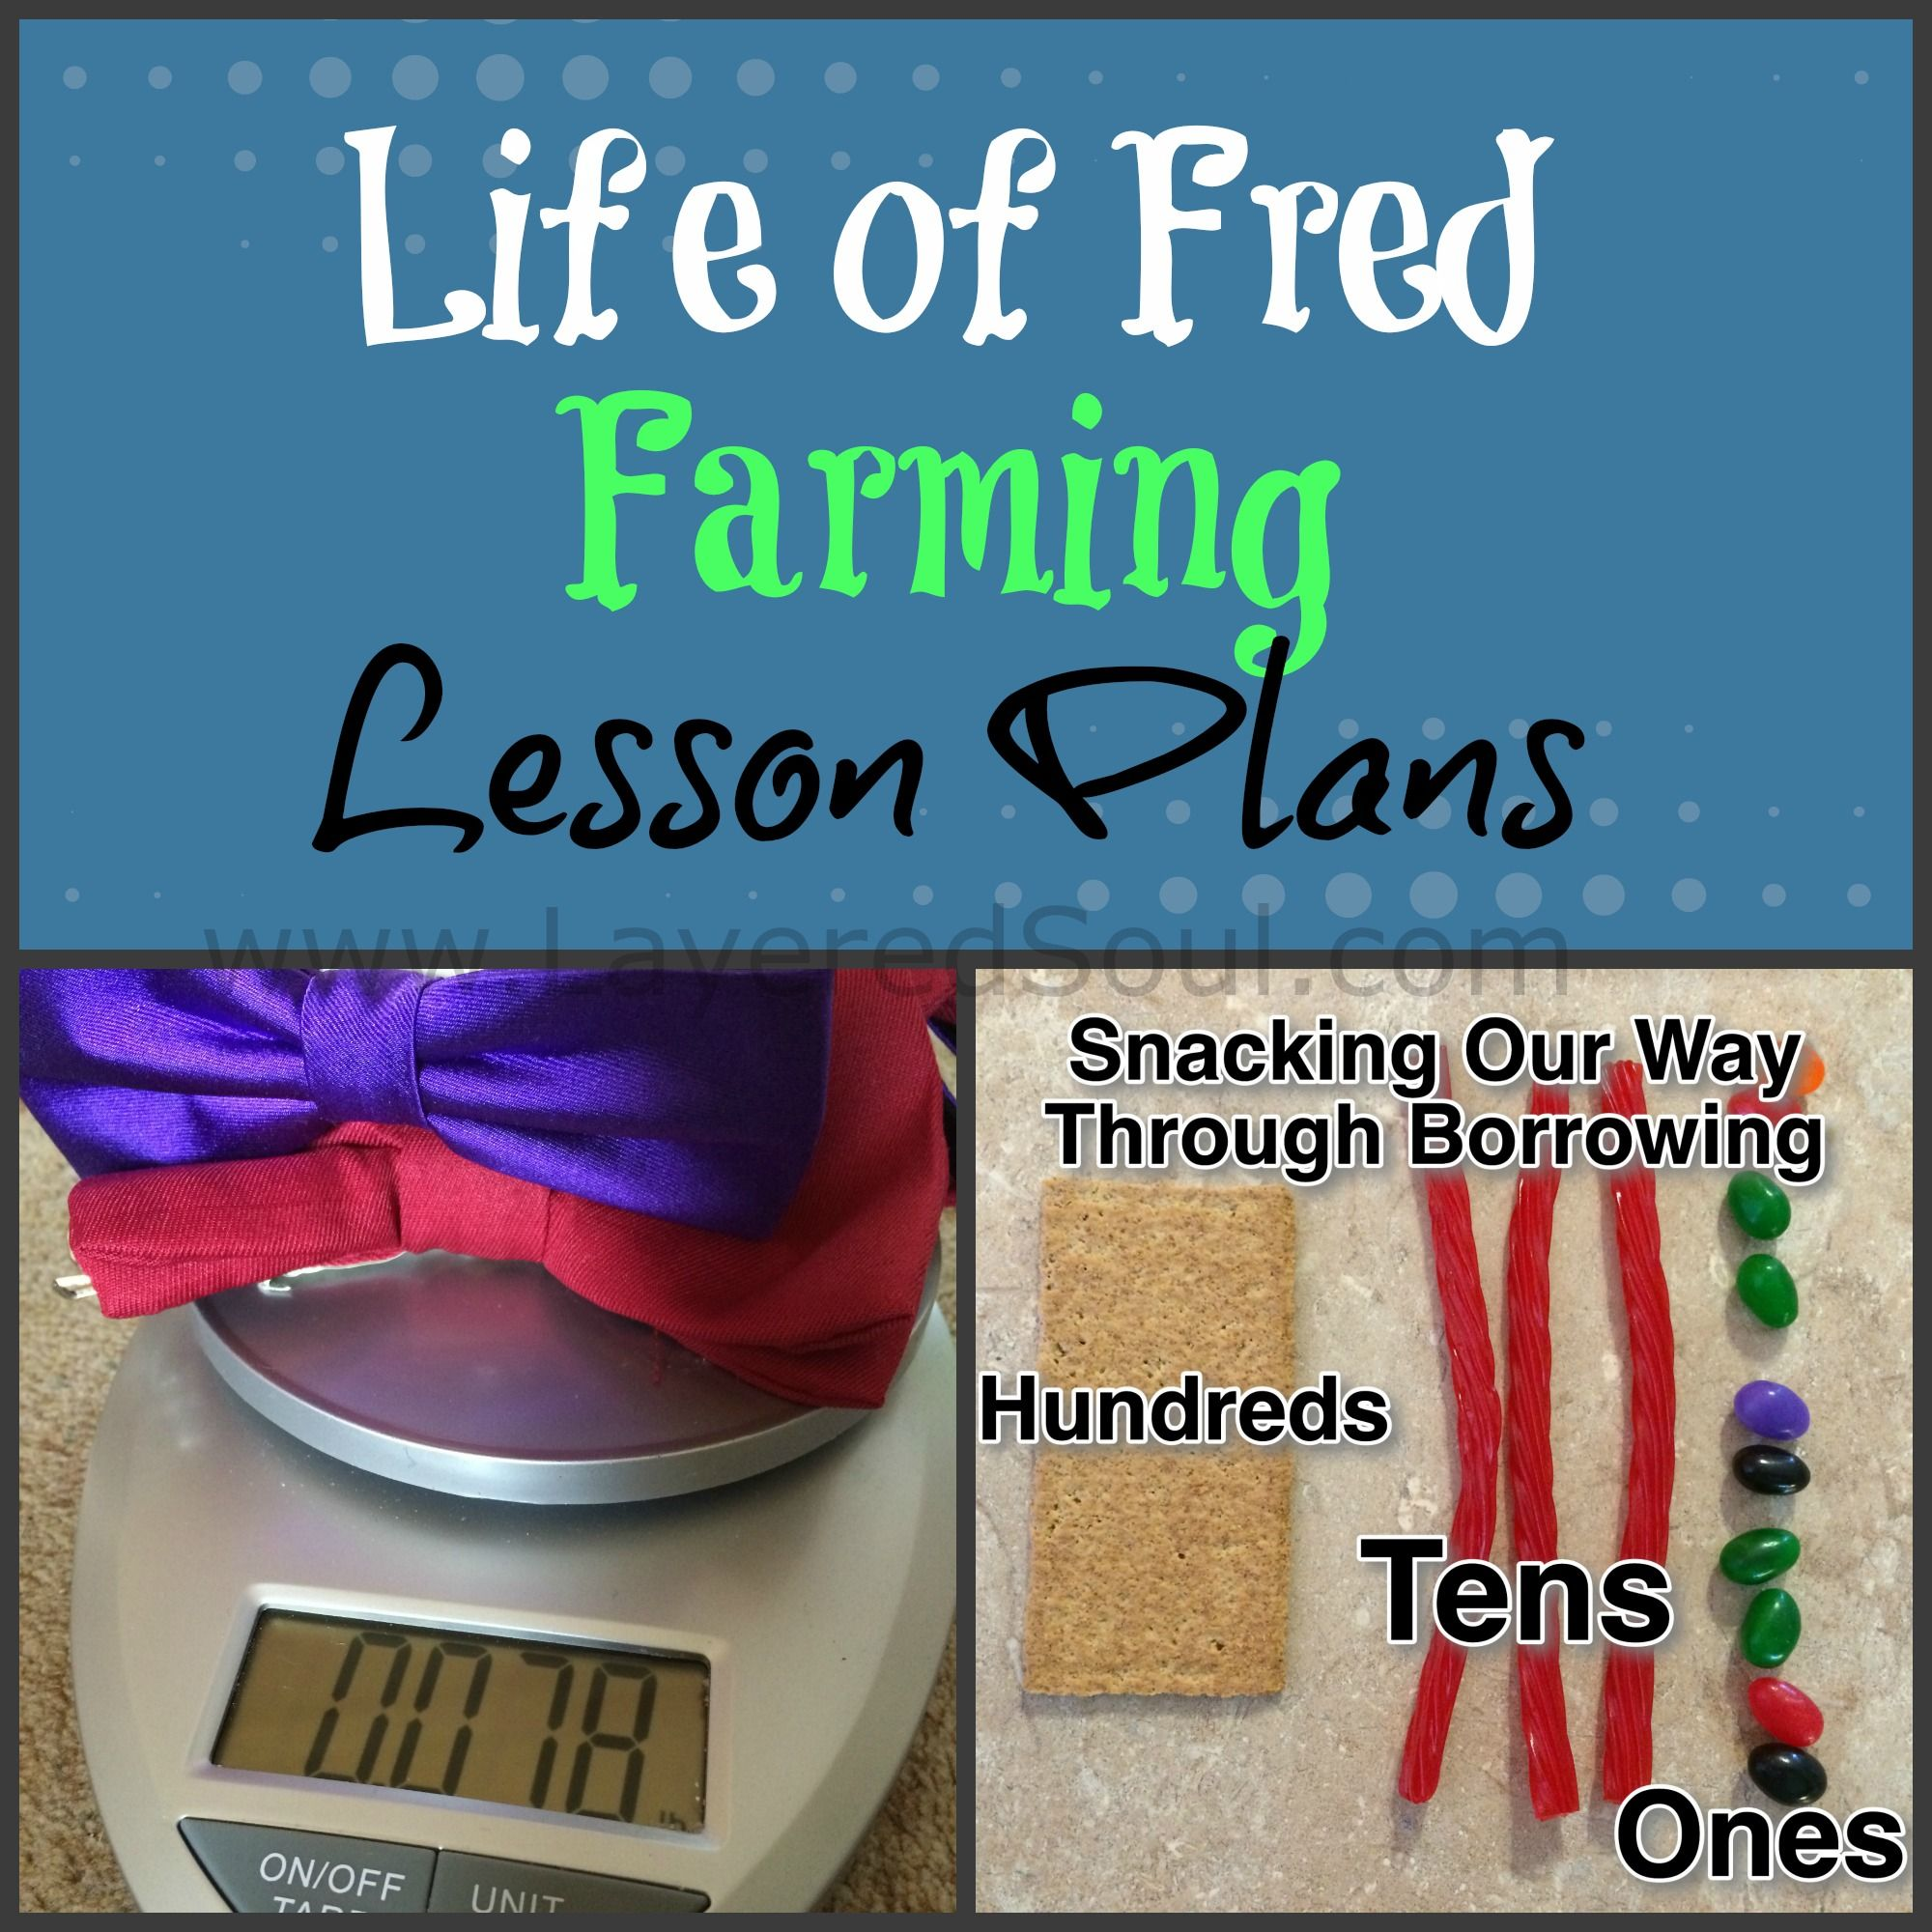 She has ideas for how to supplement Life of Fred for the first ...